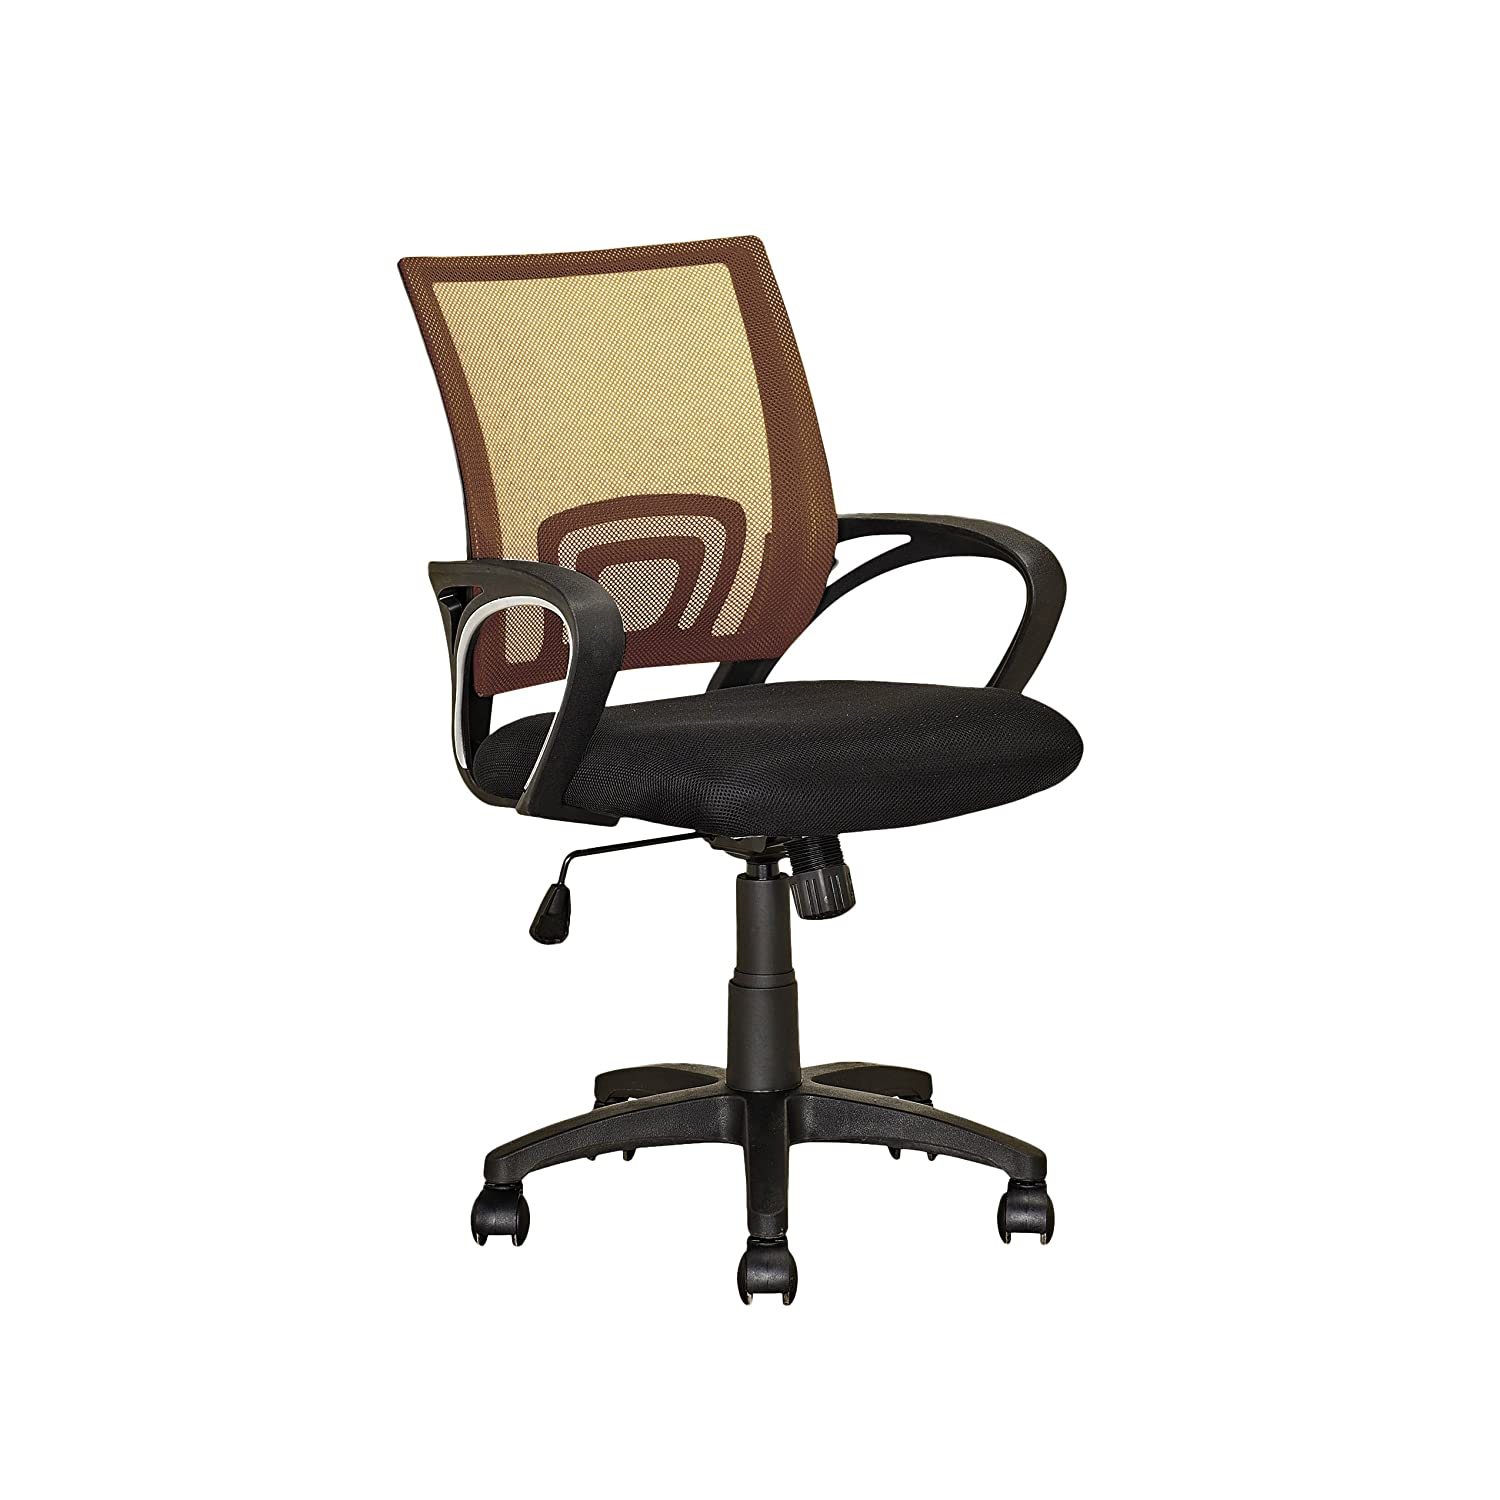 Light Brown CorLiving LOF-313-O Workspace Purple Mesh Back Office Chair